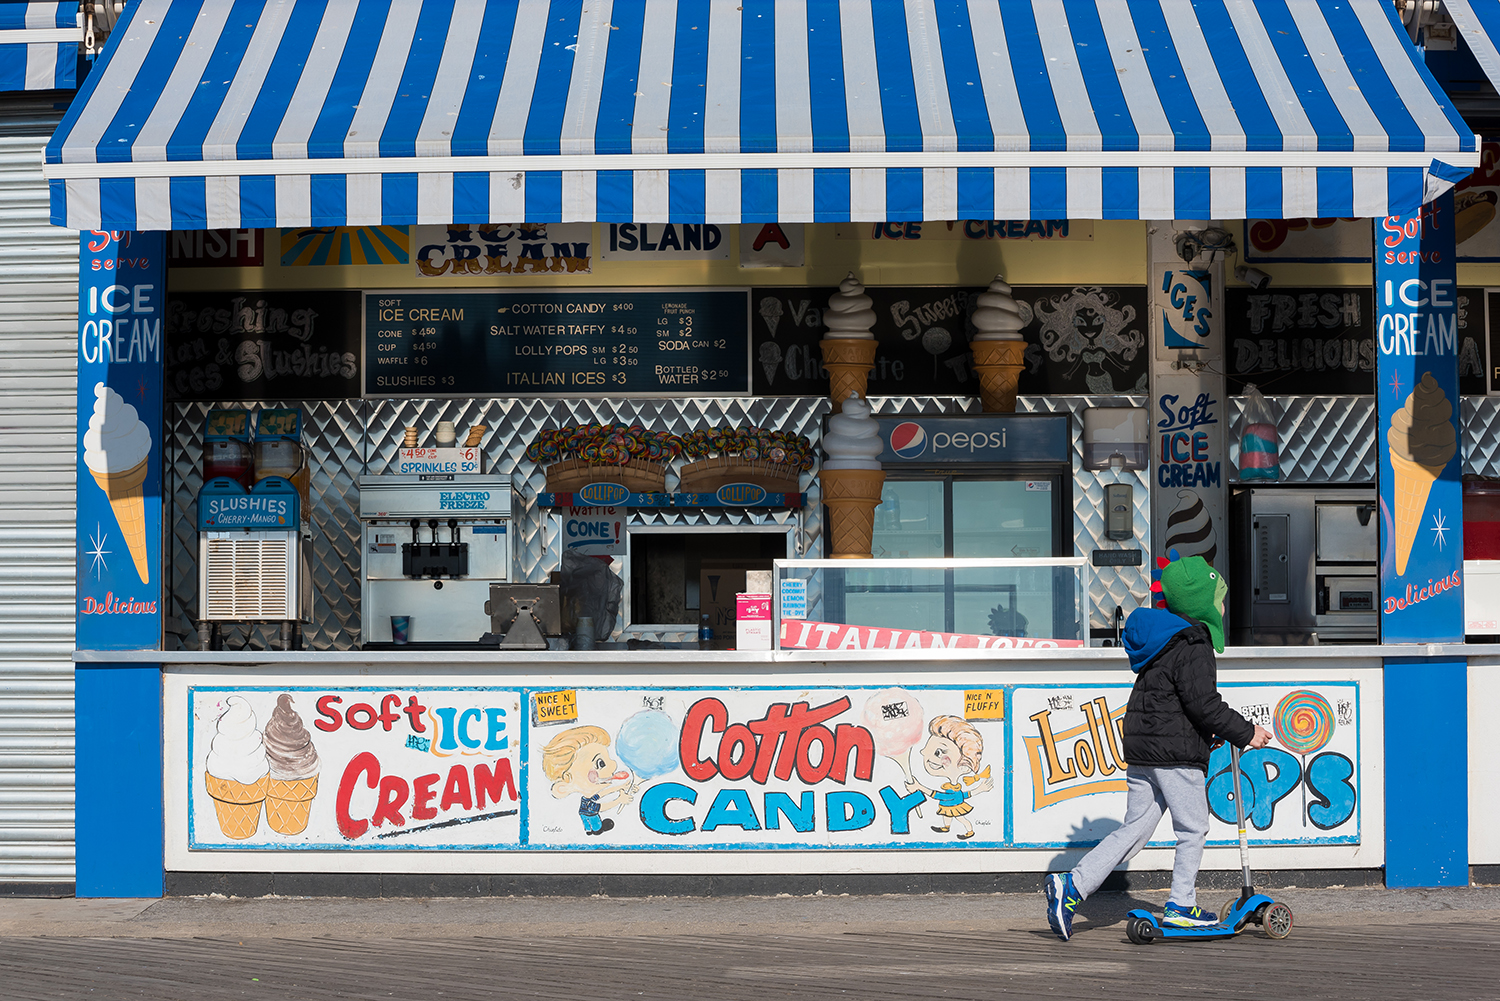 Too many temptations at Paul's Daughter on the Coney Island boardwalk.